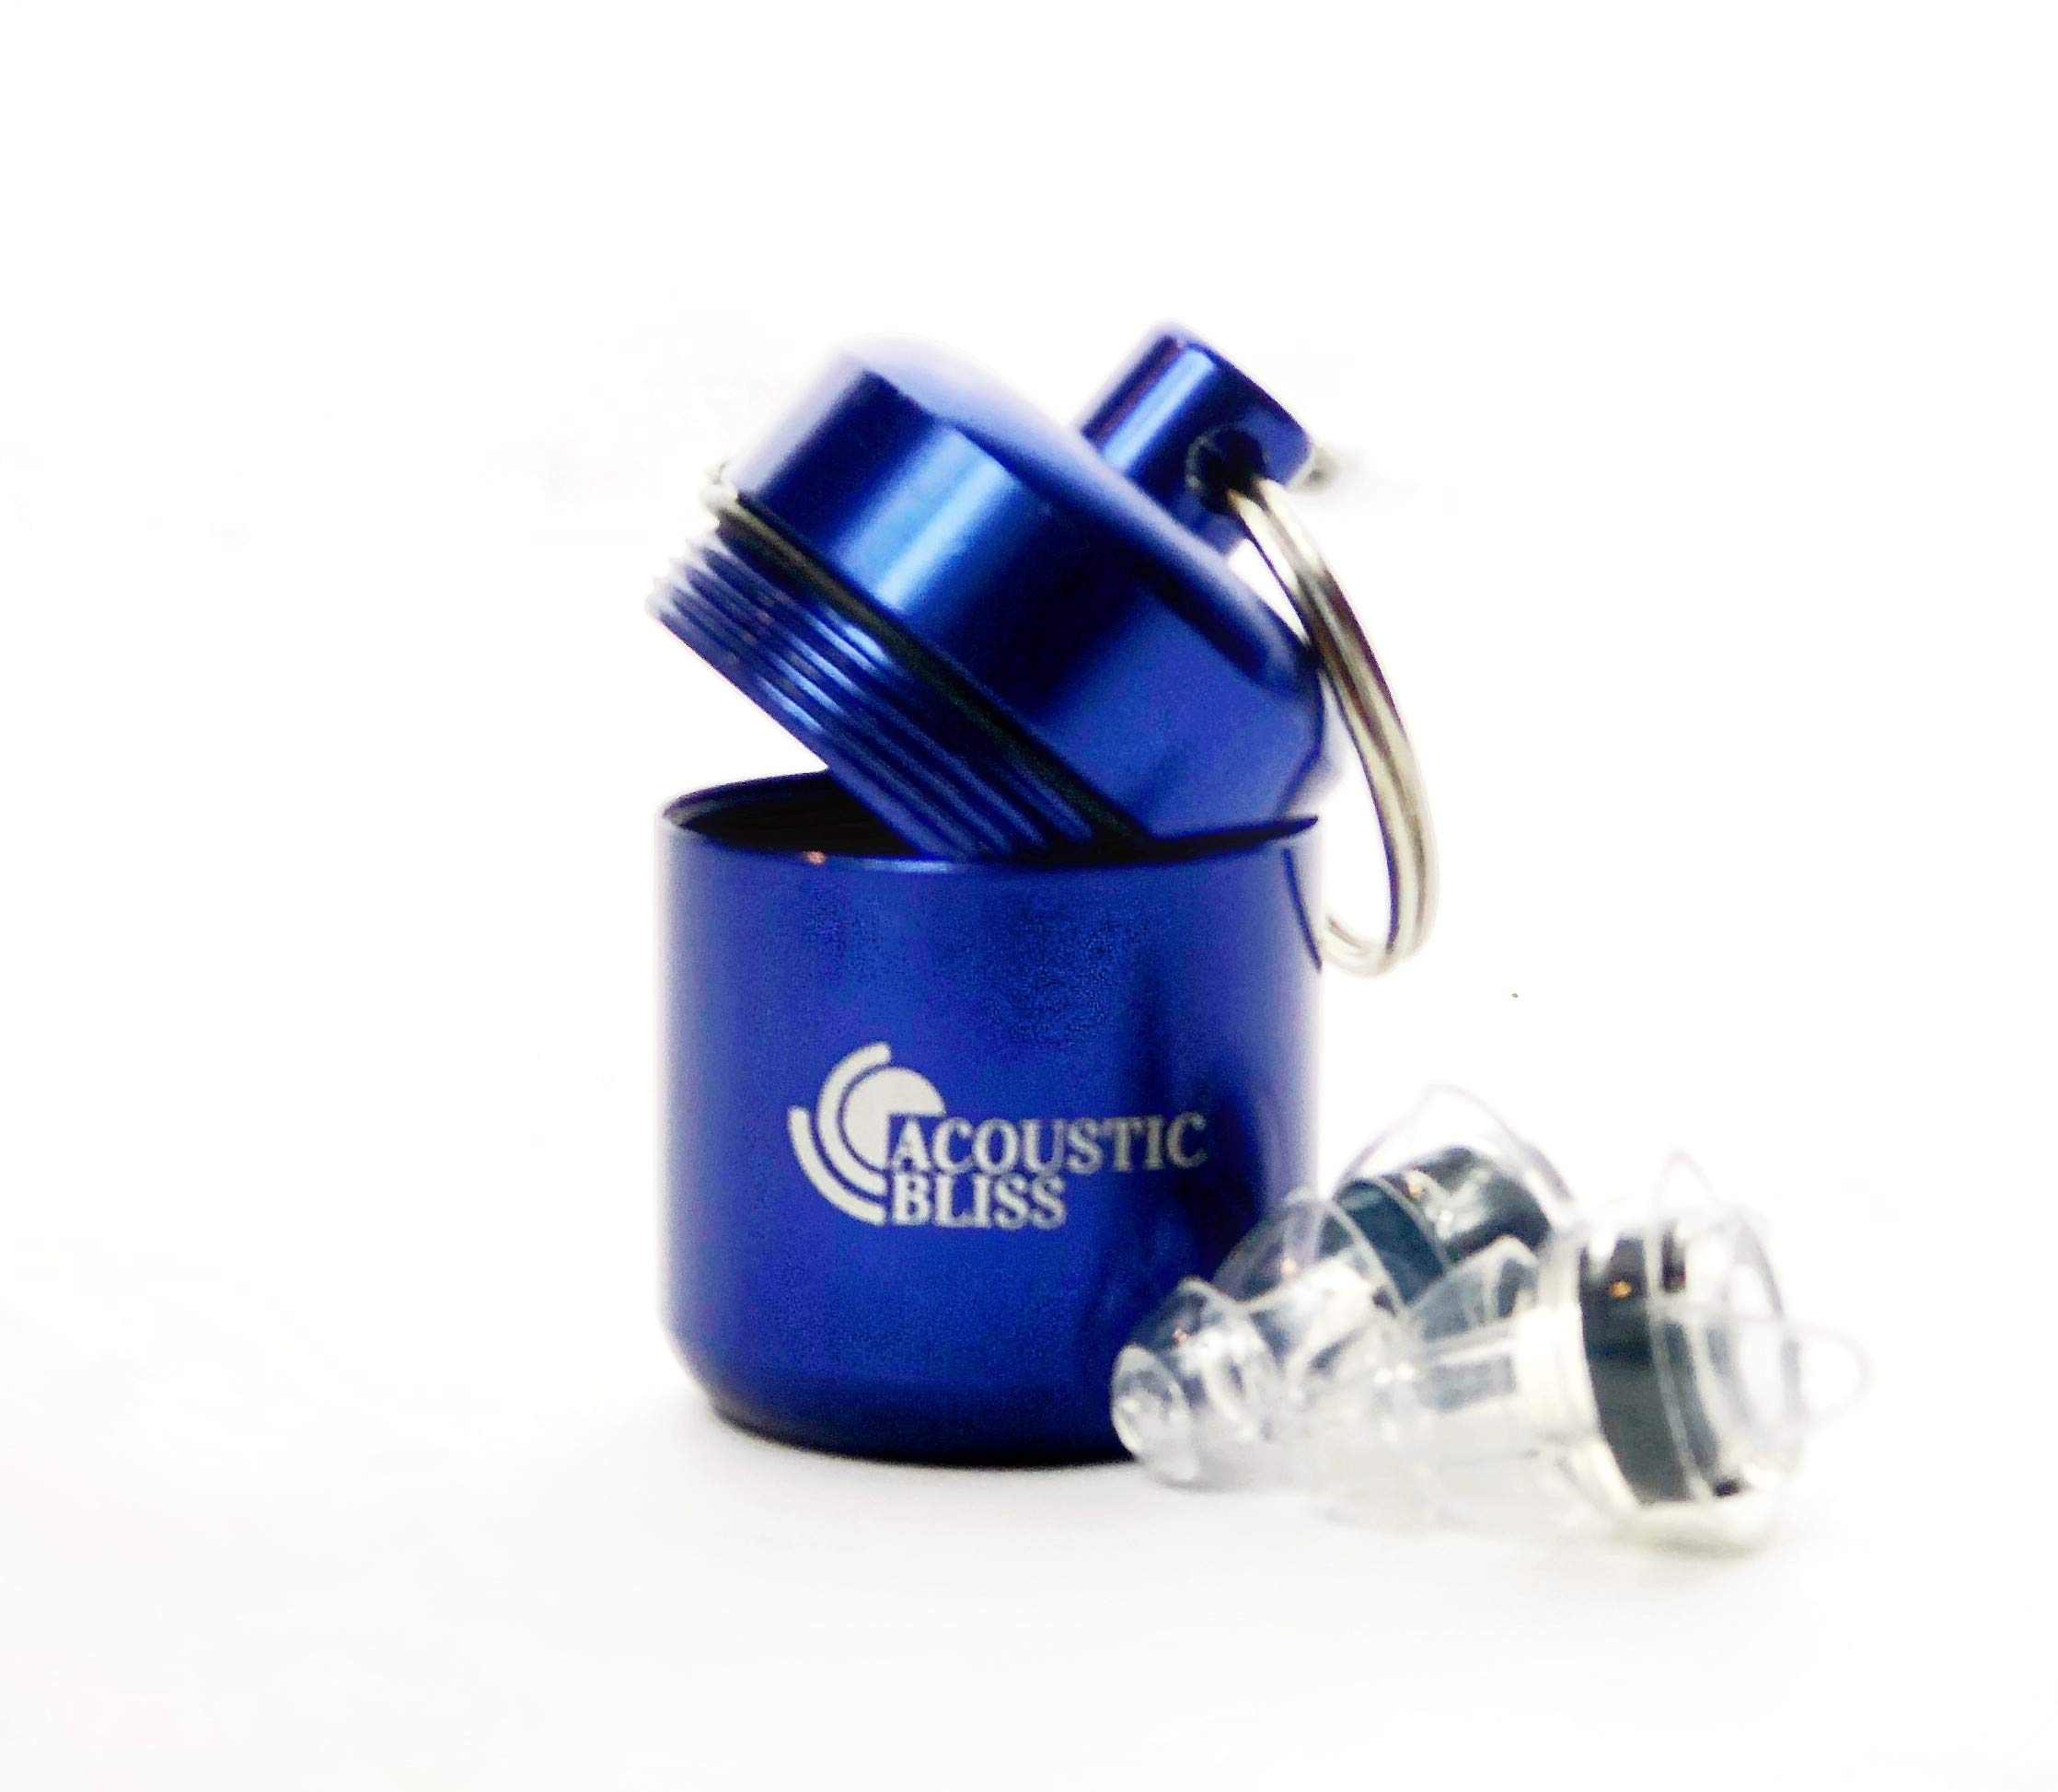 Acoustic Bliss High Fidelity Earplugs for Concerts, Bars, Noise Sensitivity, Parties, Racing (W/Premium Gift Box)